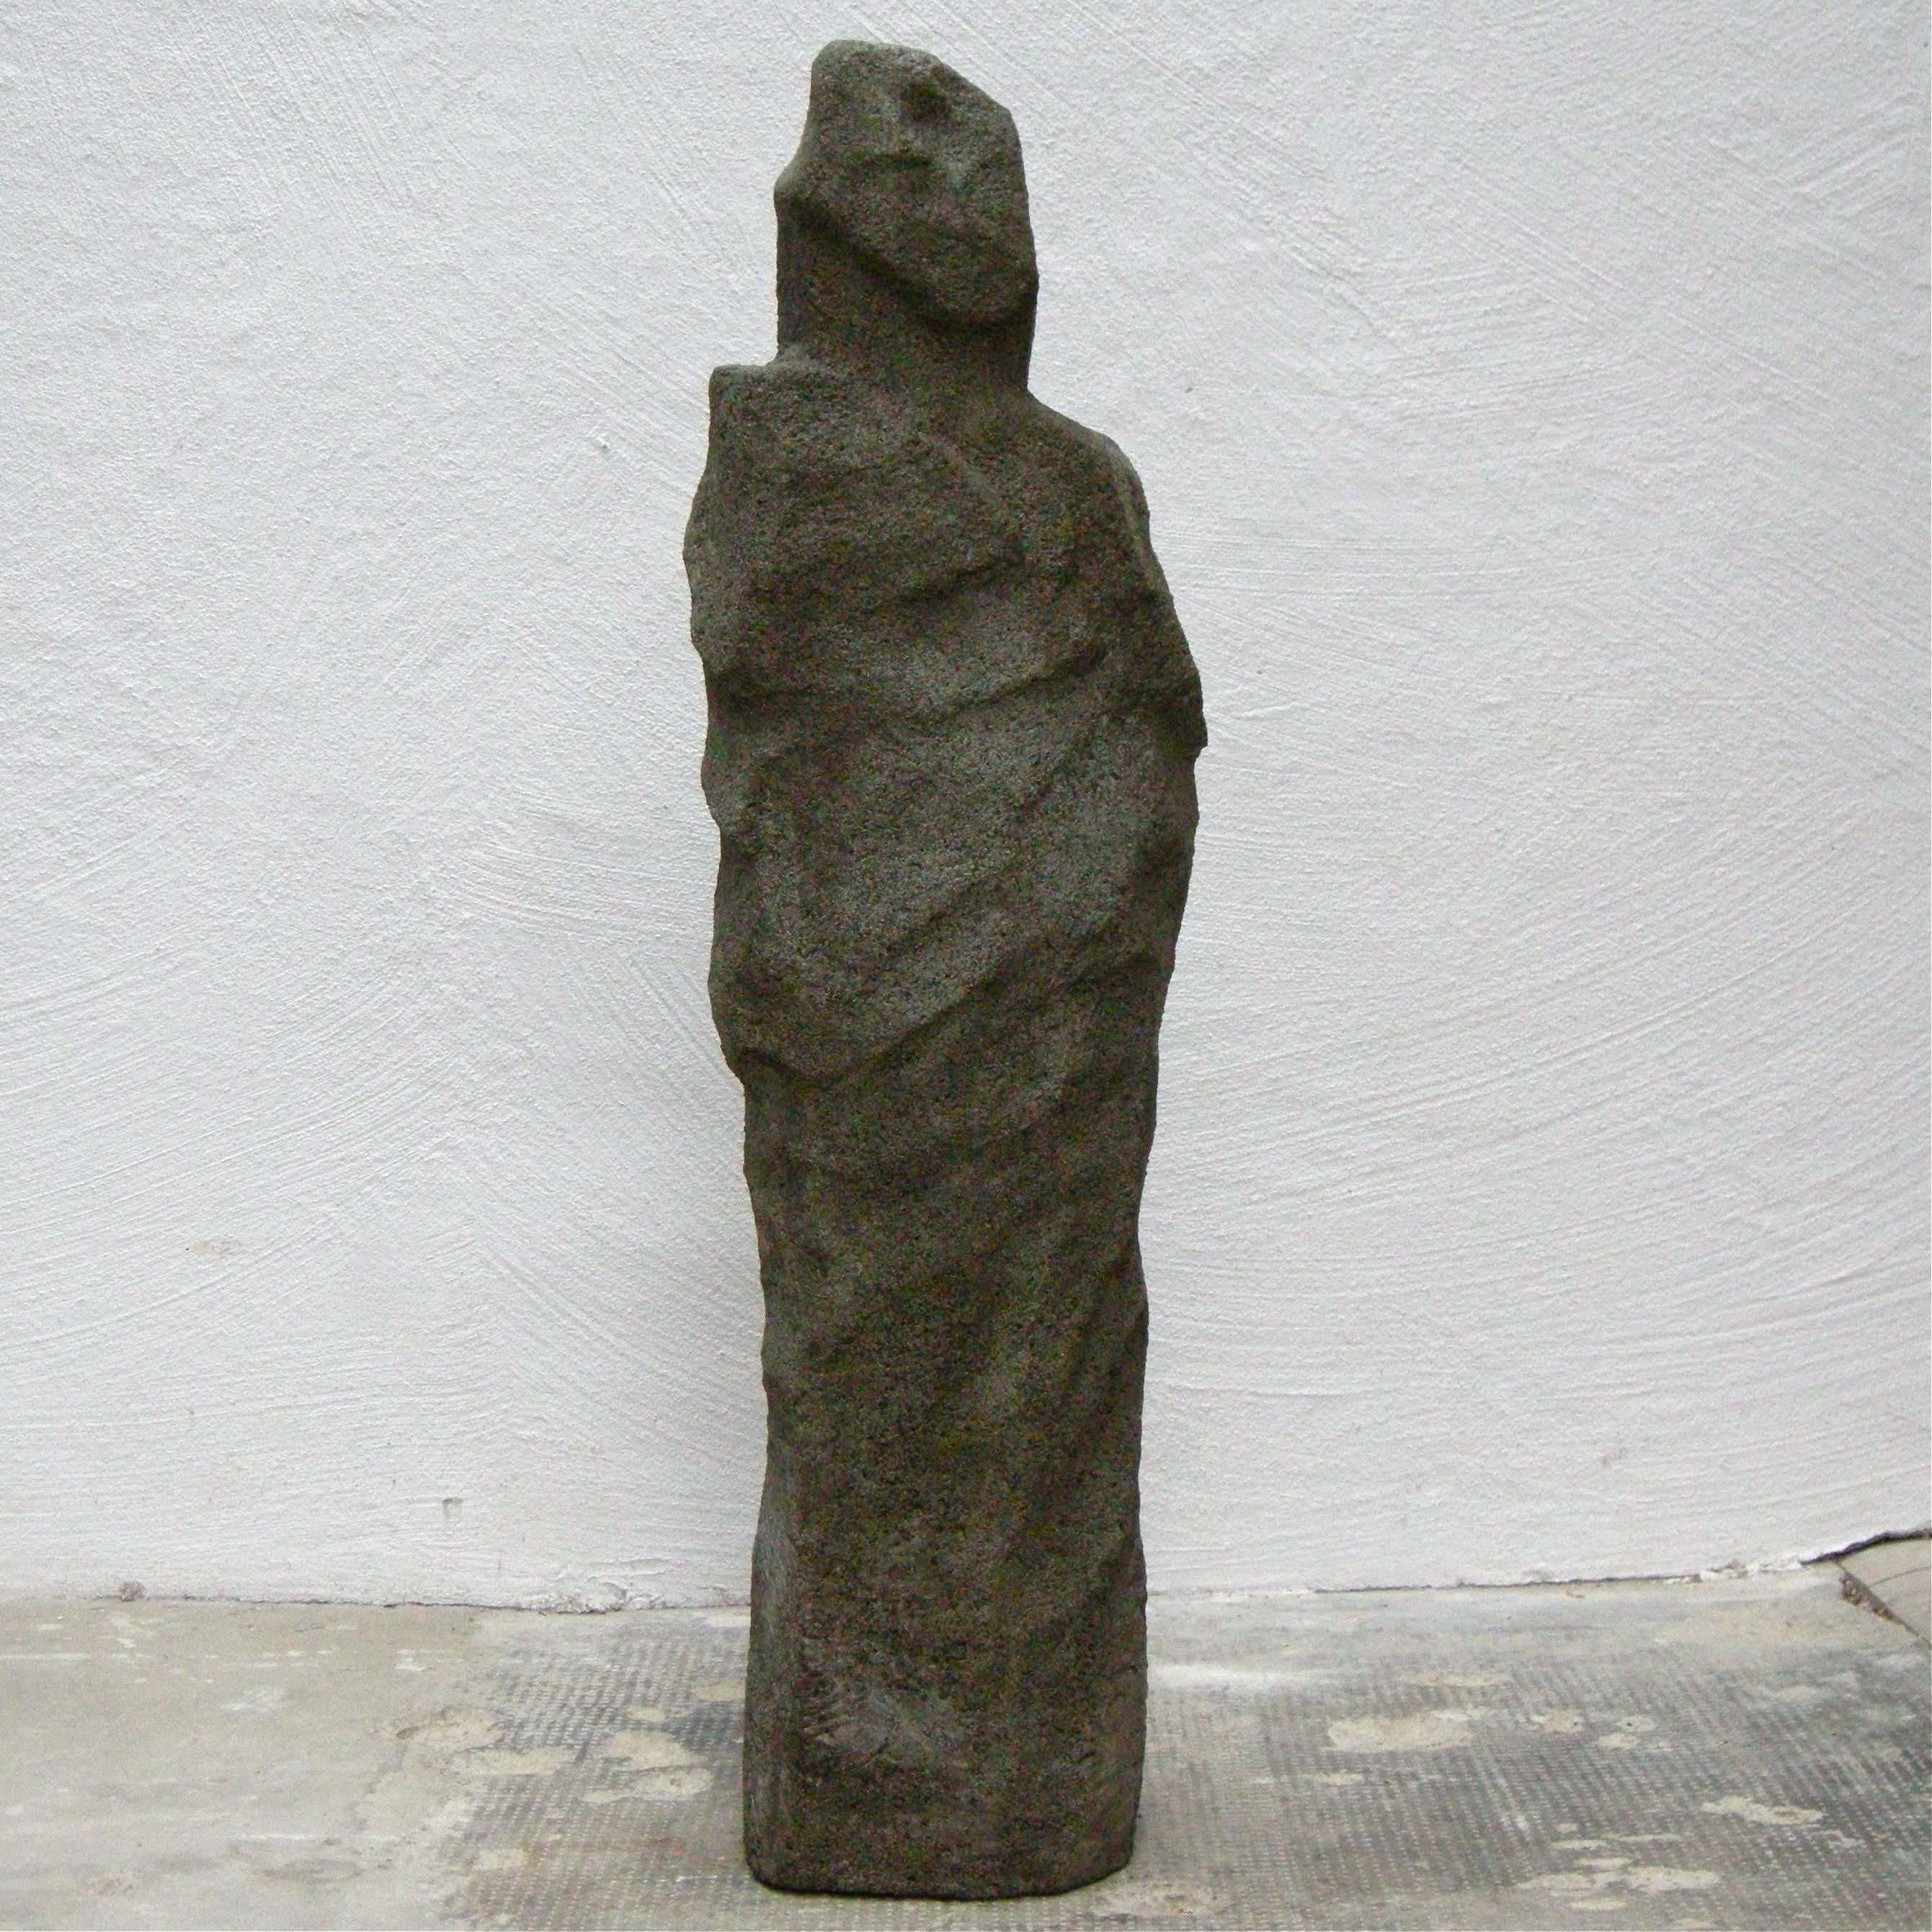 Figure, 2013, concrete, height 100 cm